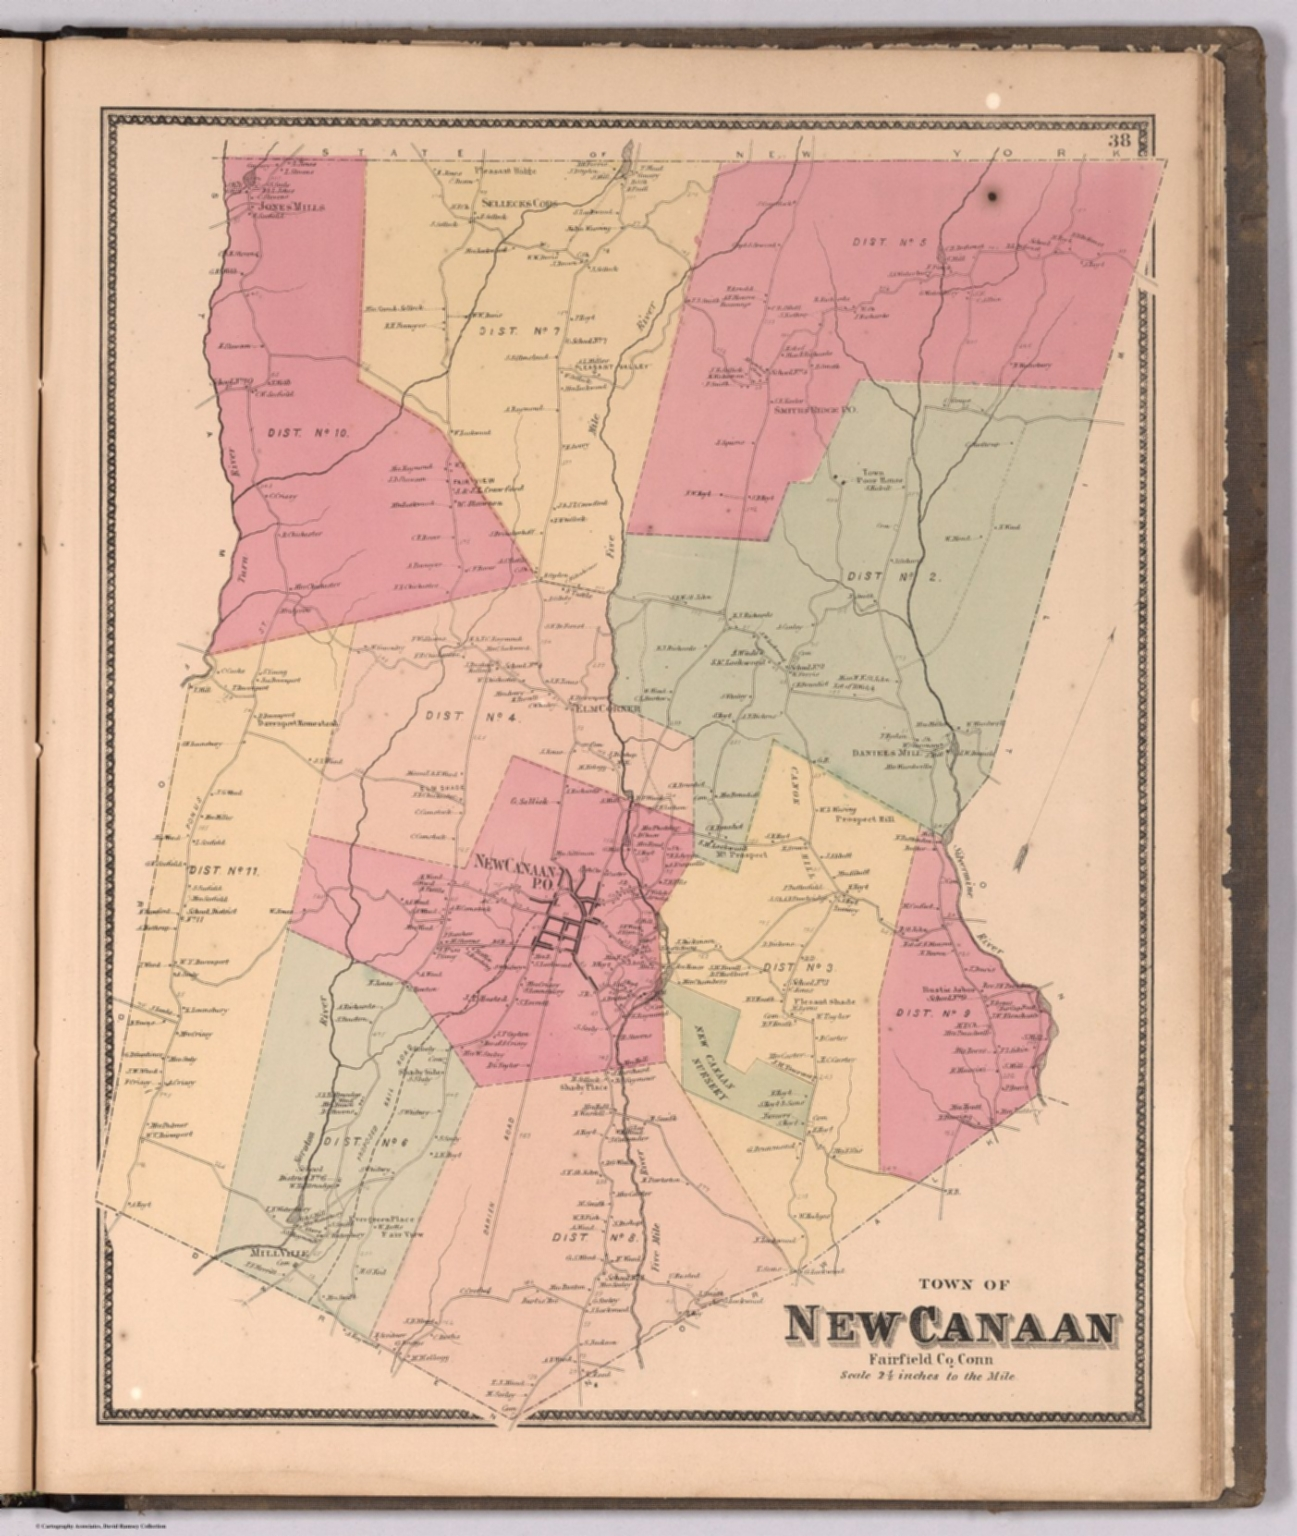 Town of New Canaan, Fairfield County, Connecticut. - David Rumsey ...